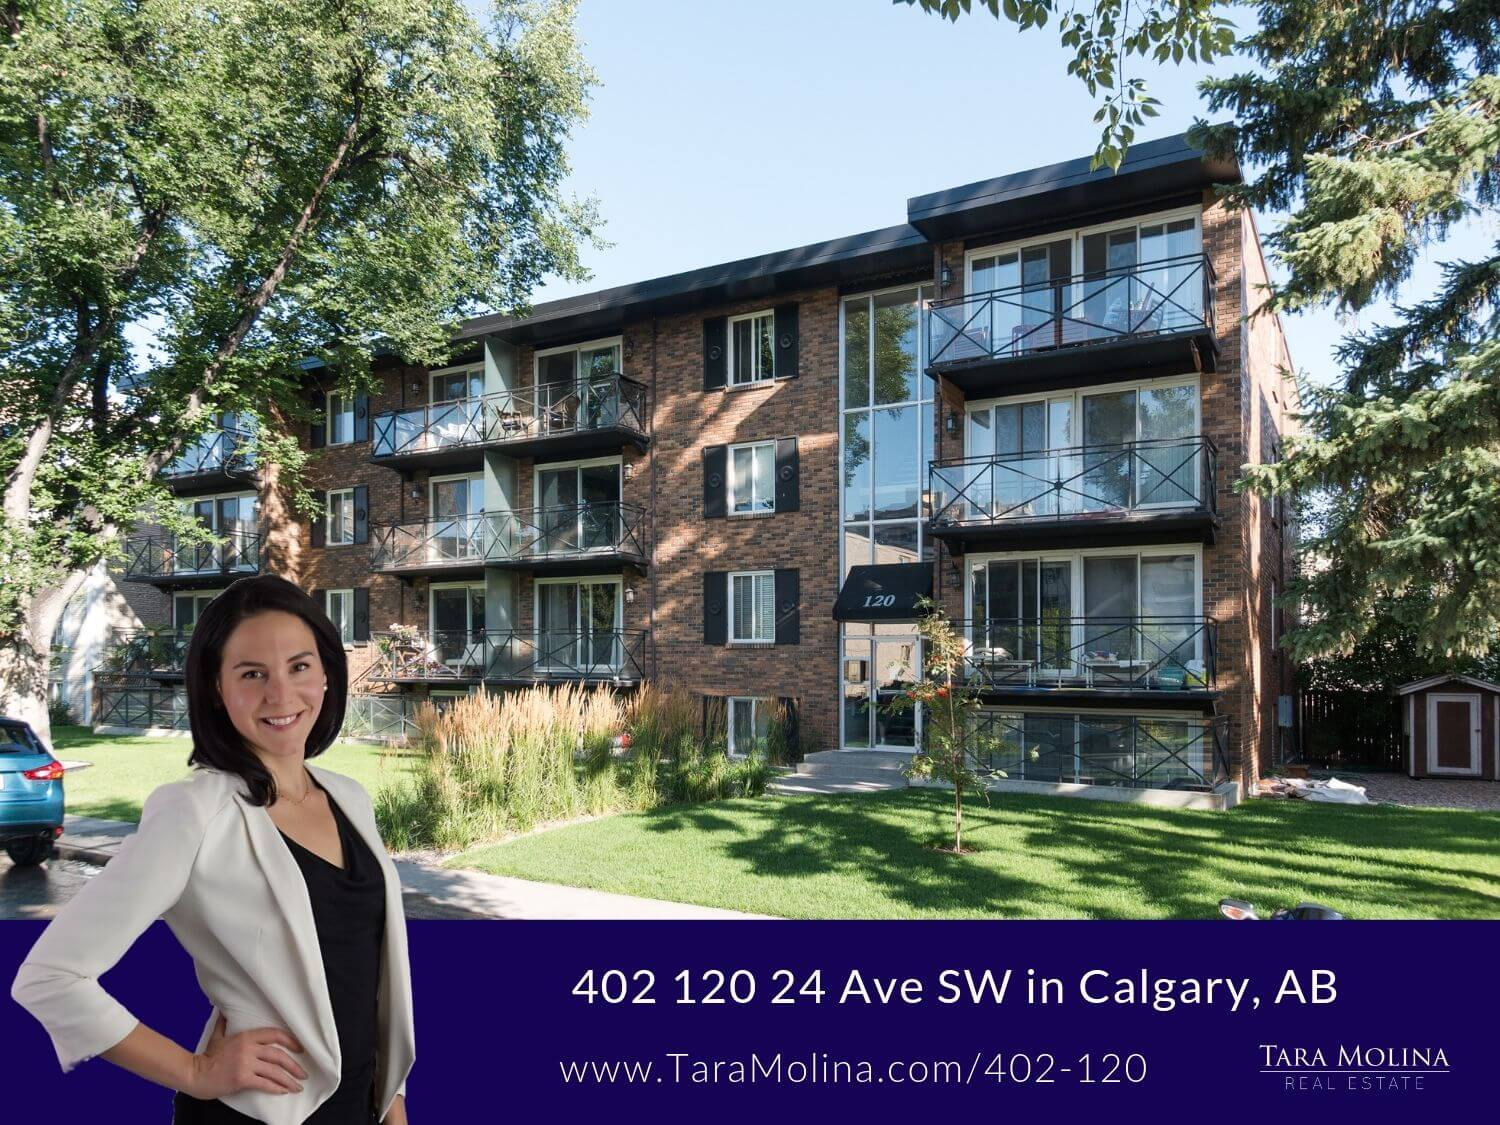 402 120 24 Ave SW in Calgary, AB - Listing